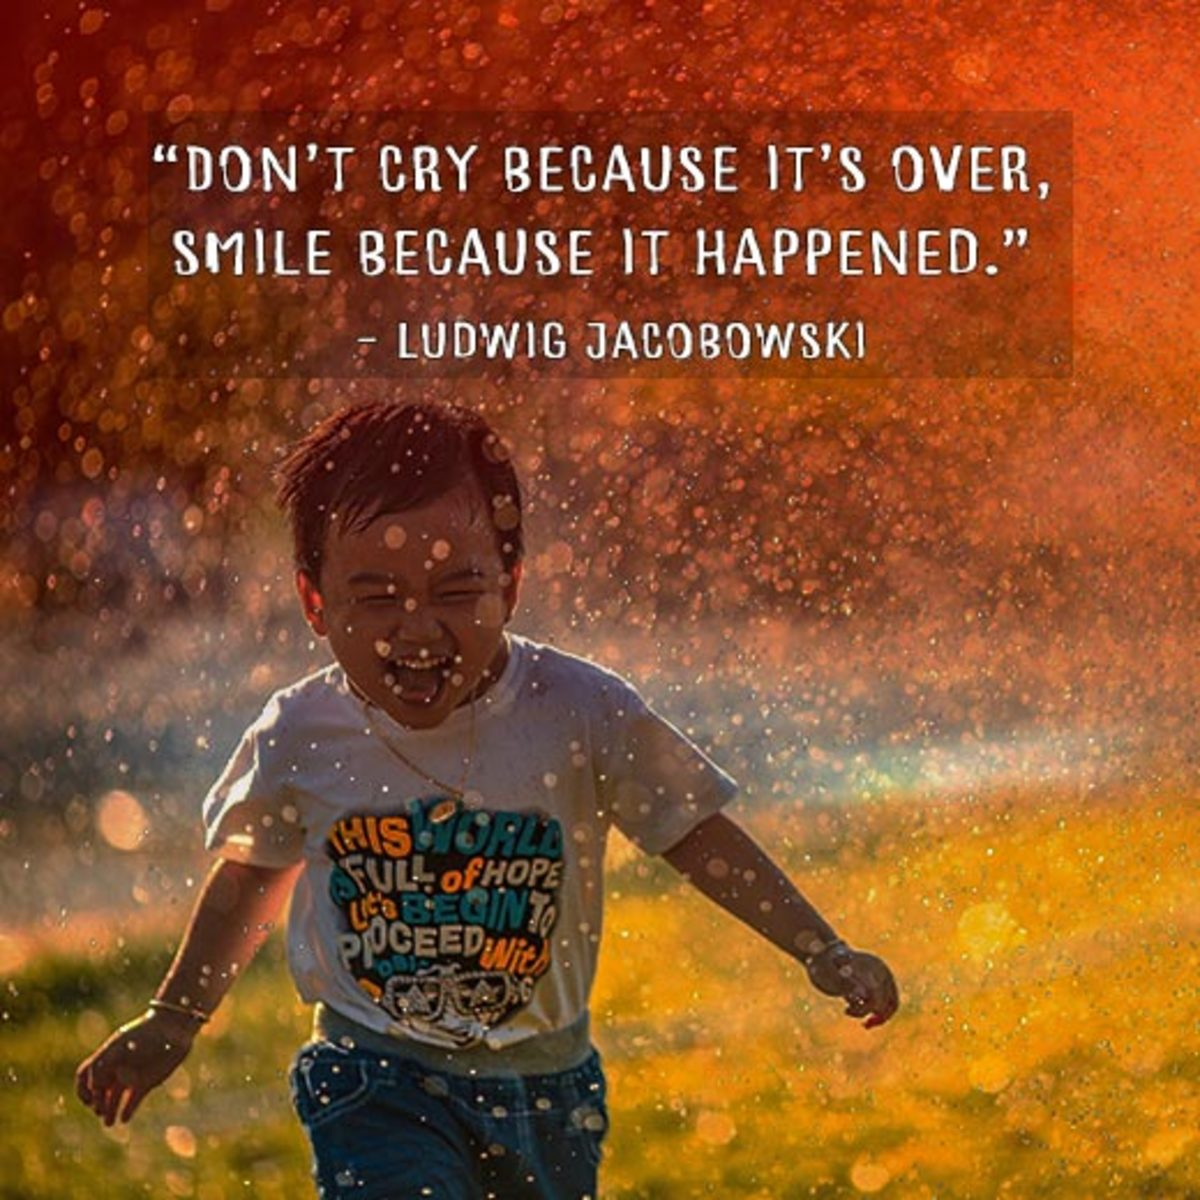 """""""Don't cry because it's over, smile because it happened."""" - Ludwig Jacobowski"""